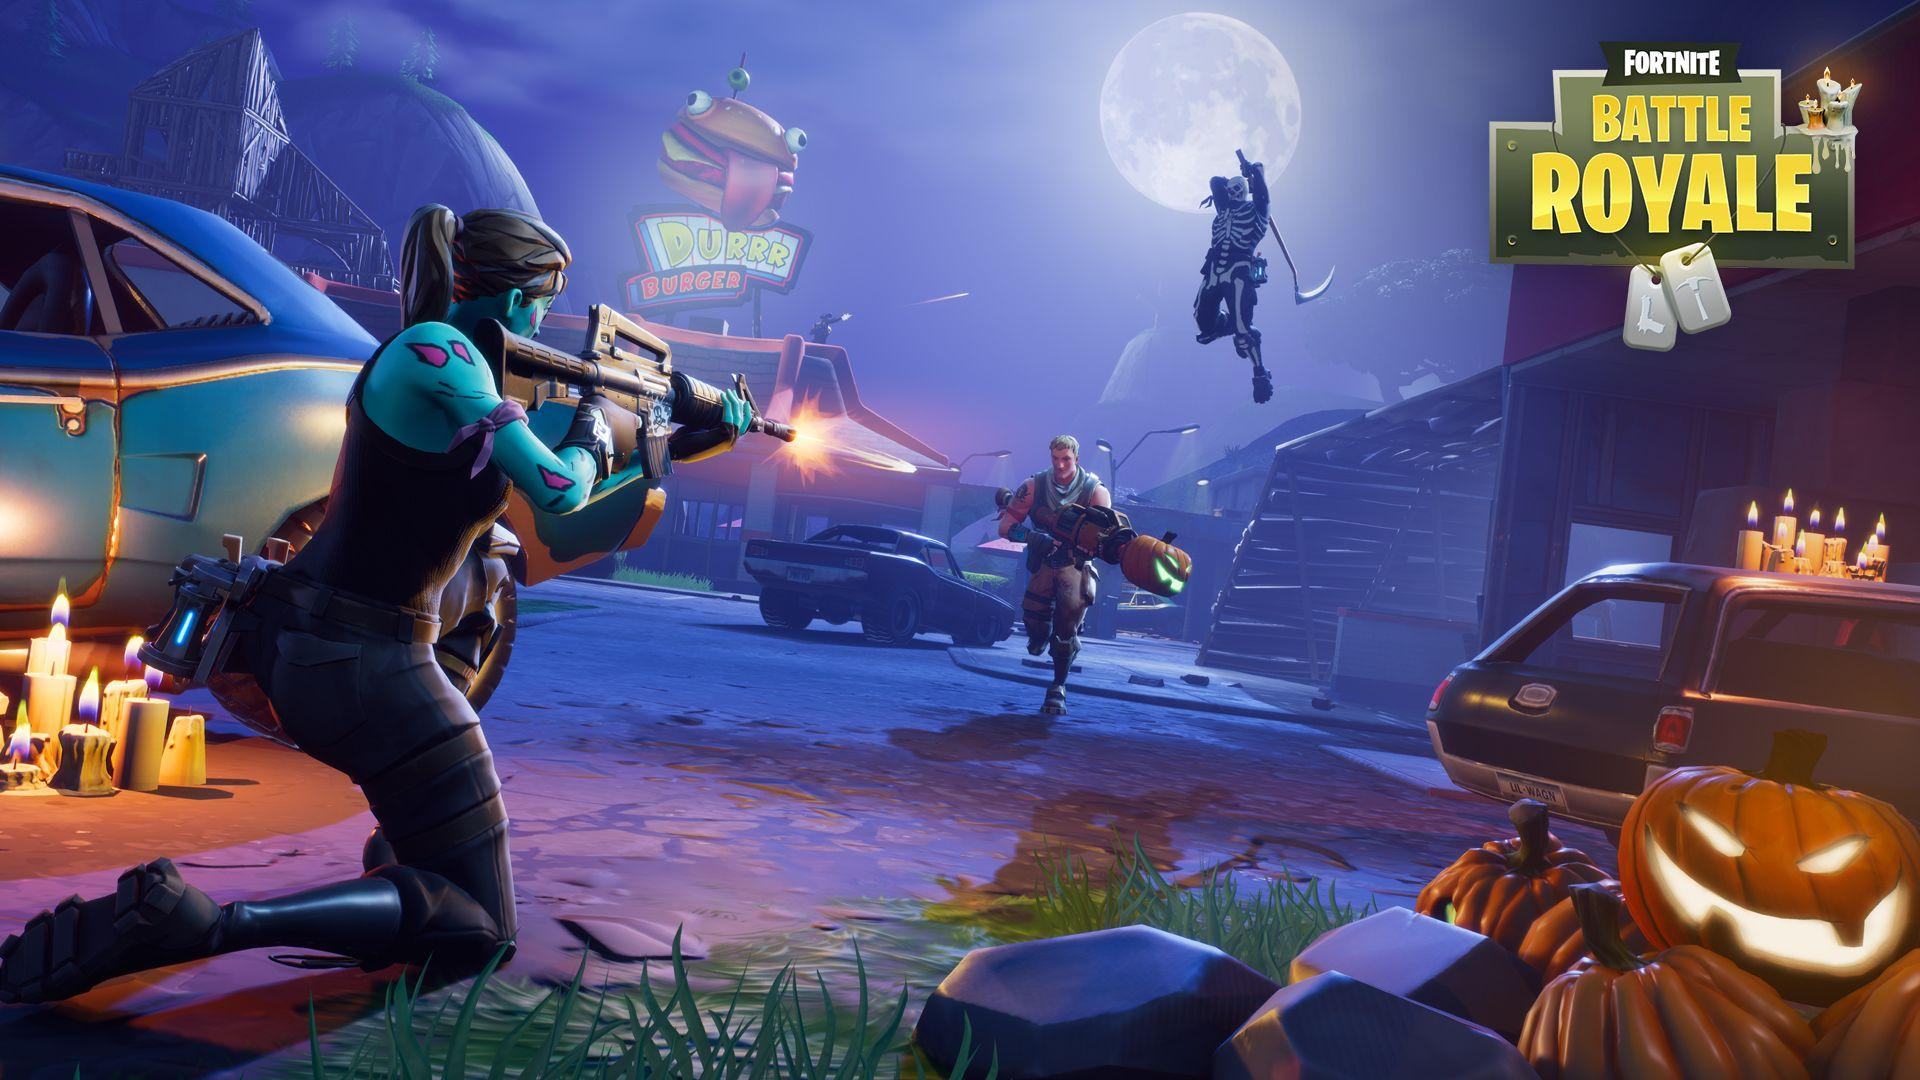 Fortnite Save The World Wallpapers Wallpaper Cave